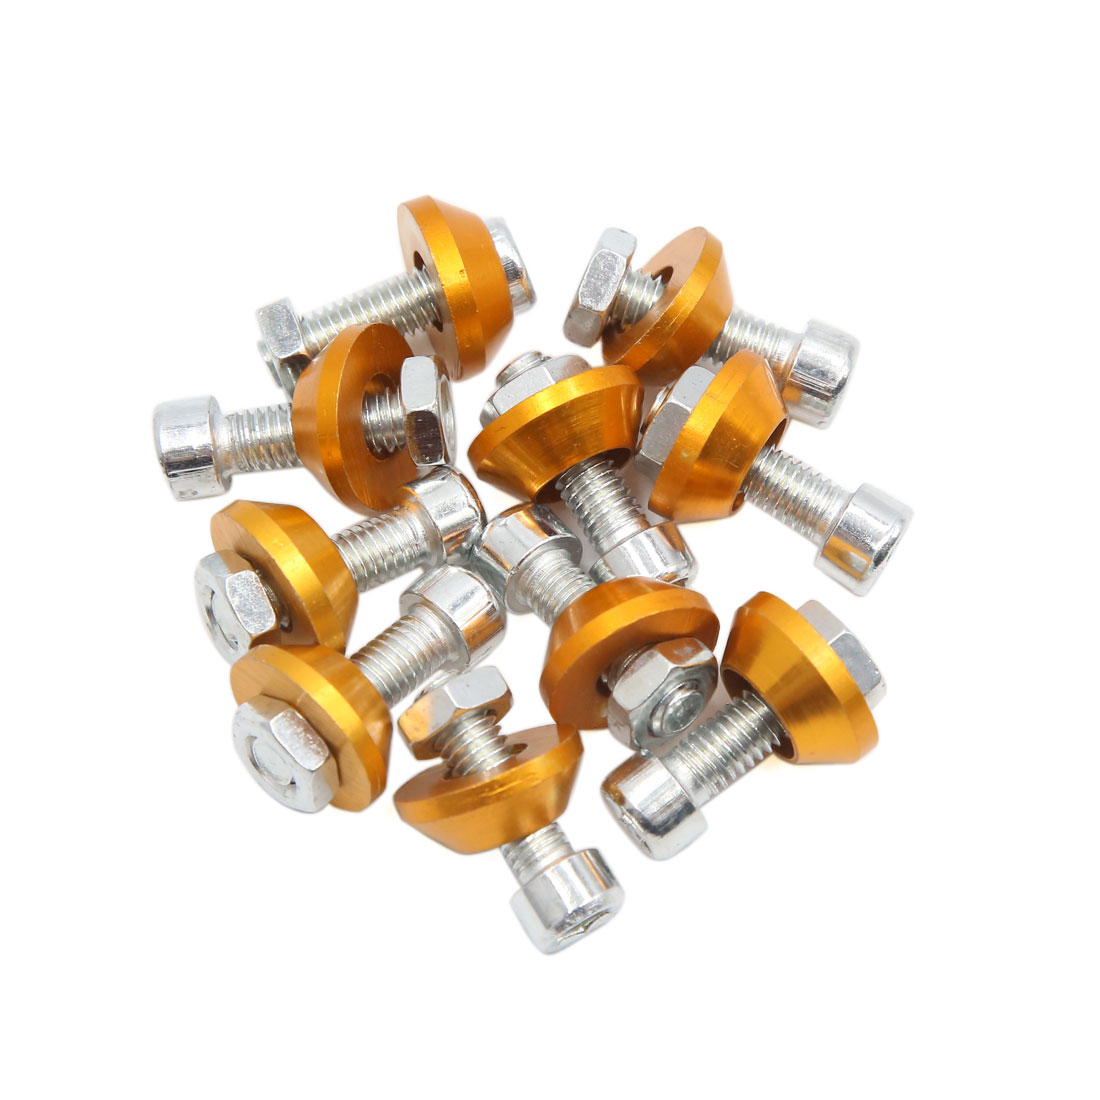 10pcs Gold Tone 6mm Thread Diameter Motorcycle License Plate Frame Screws Bolts Caps